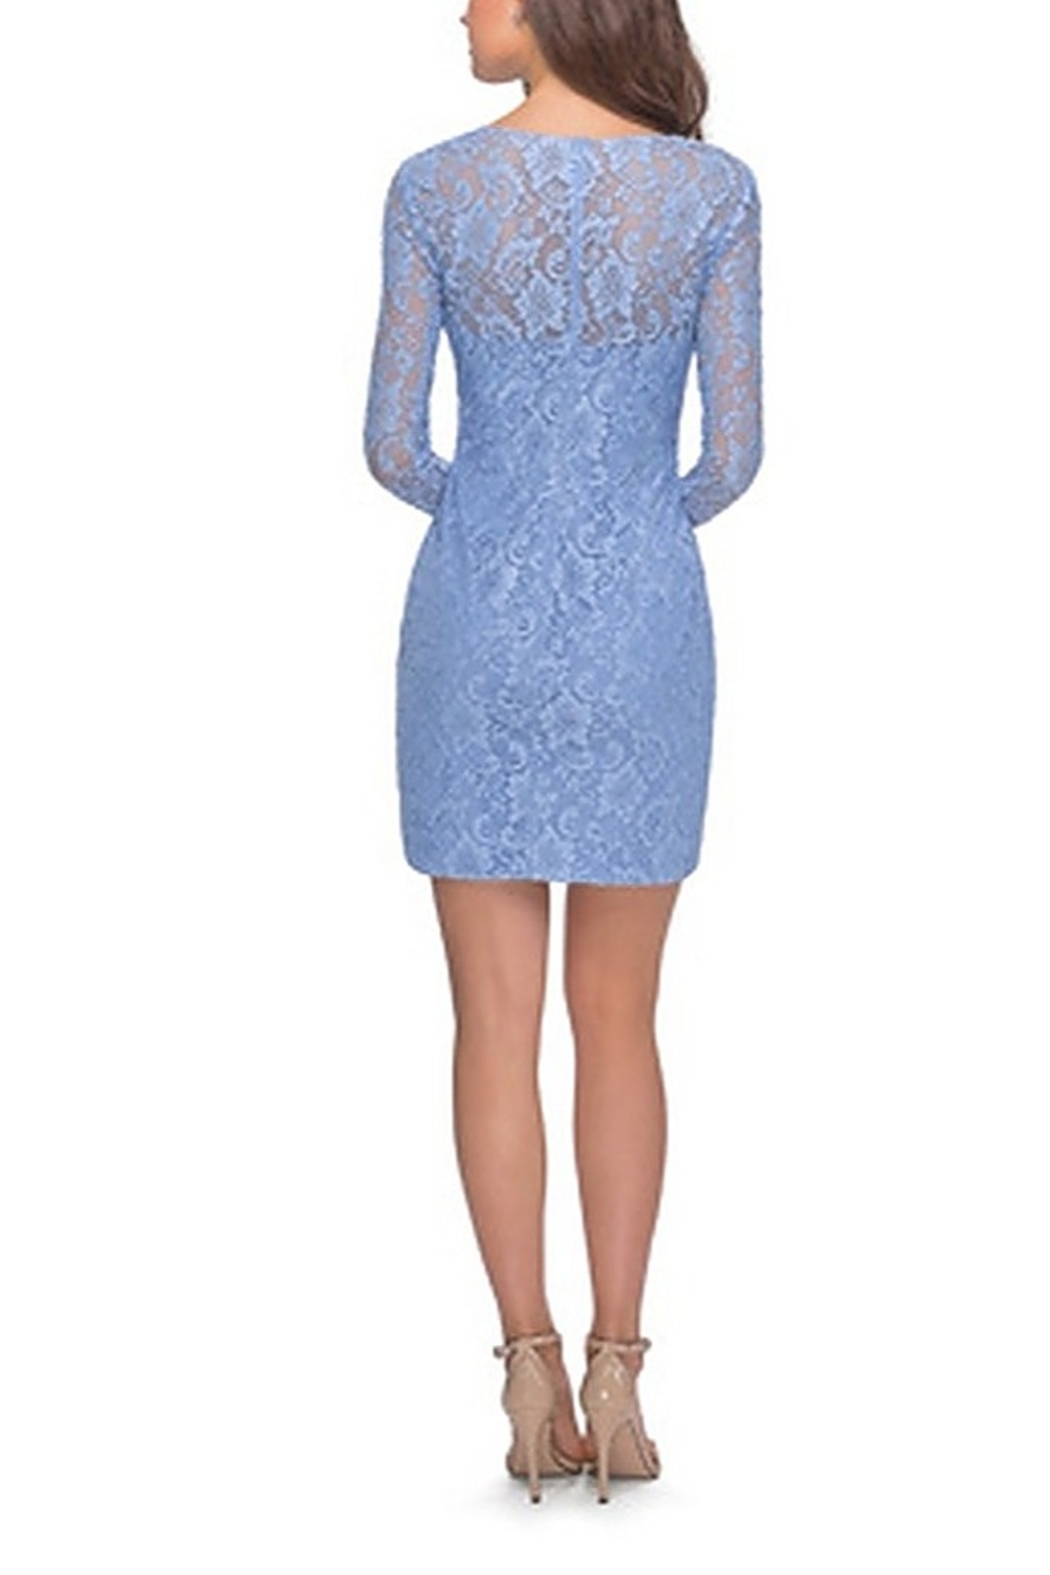 La Femme Long Sleeve Lace Short Dress With Sheer Back Detail - Front Full Image